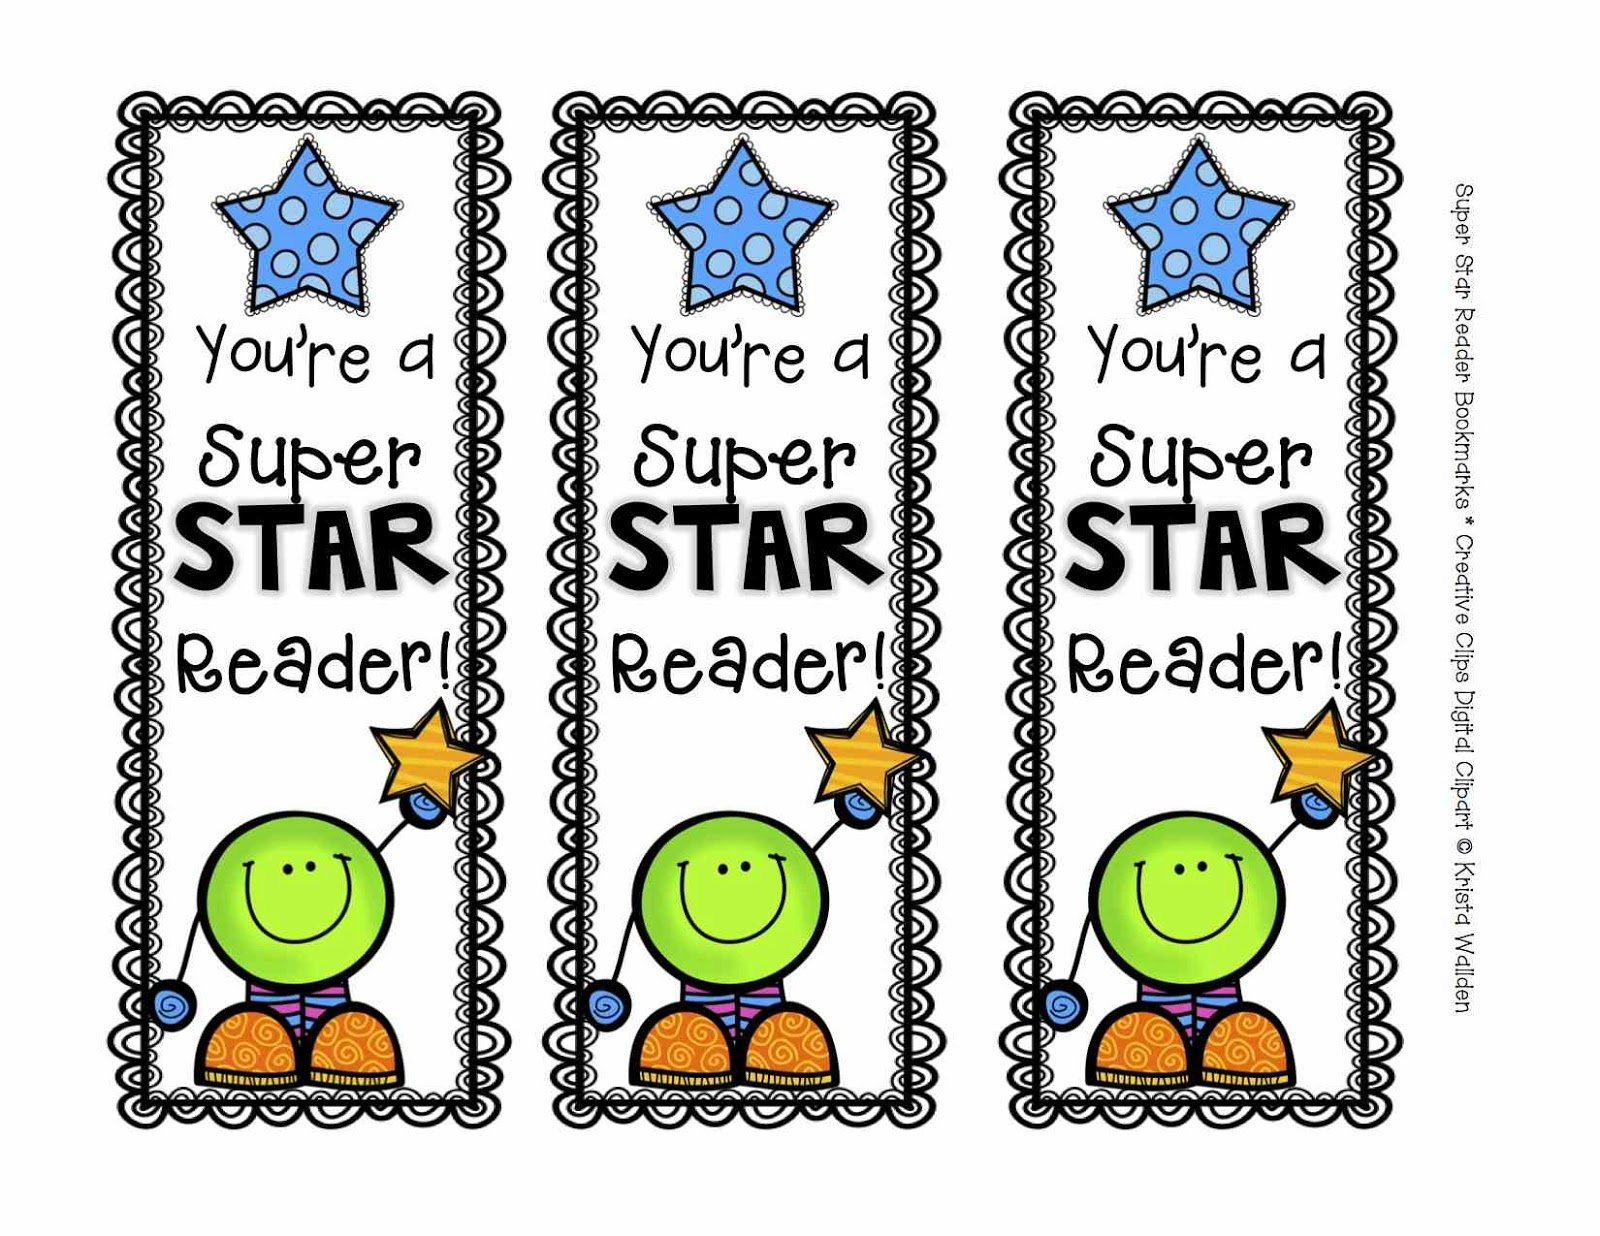 Free Bookmarks Cliparts, Download Free Clip Art, Free Clip Art On - Free Printable Bookmarks For Libraries